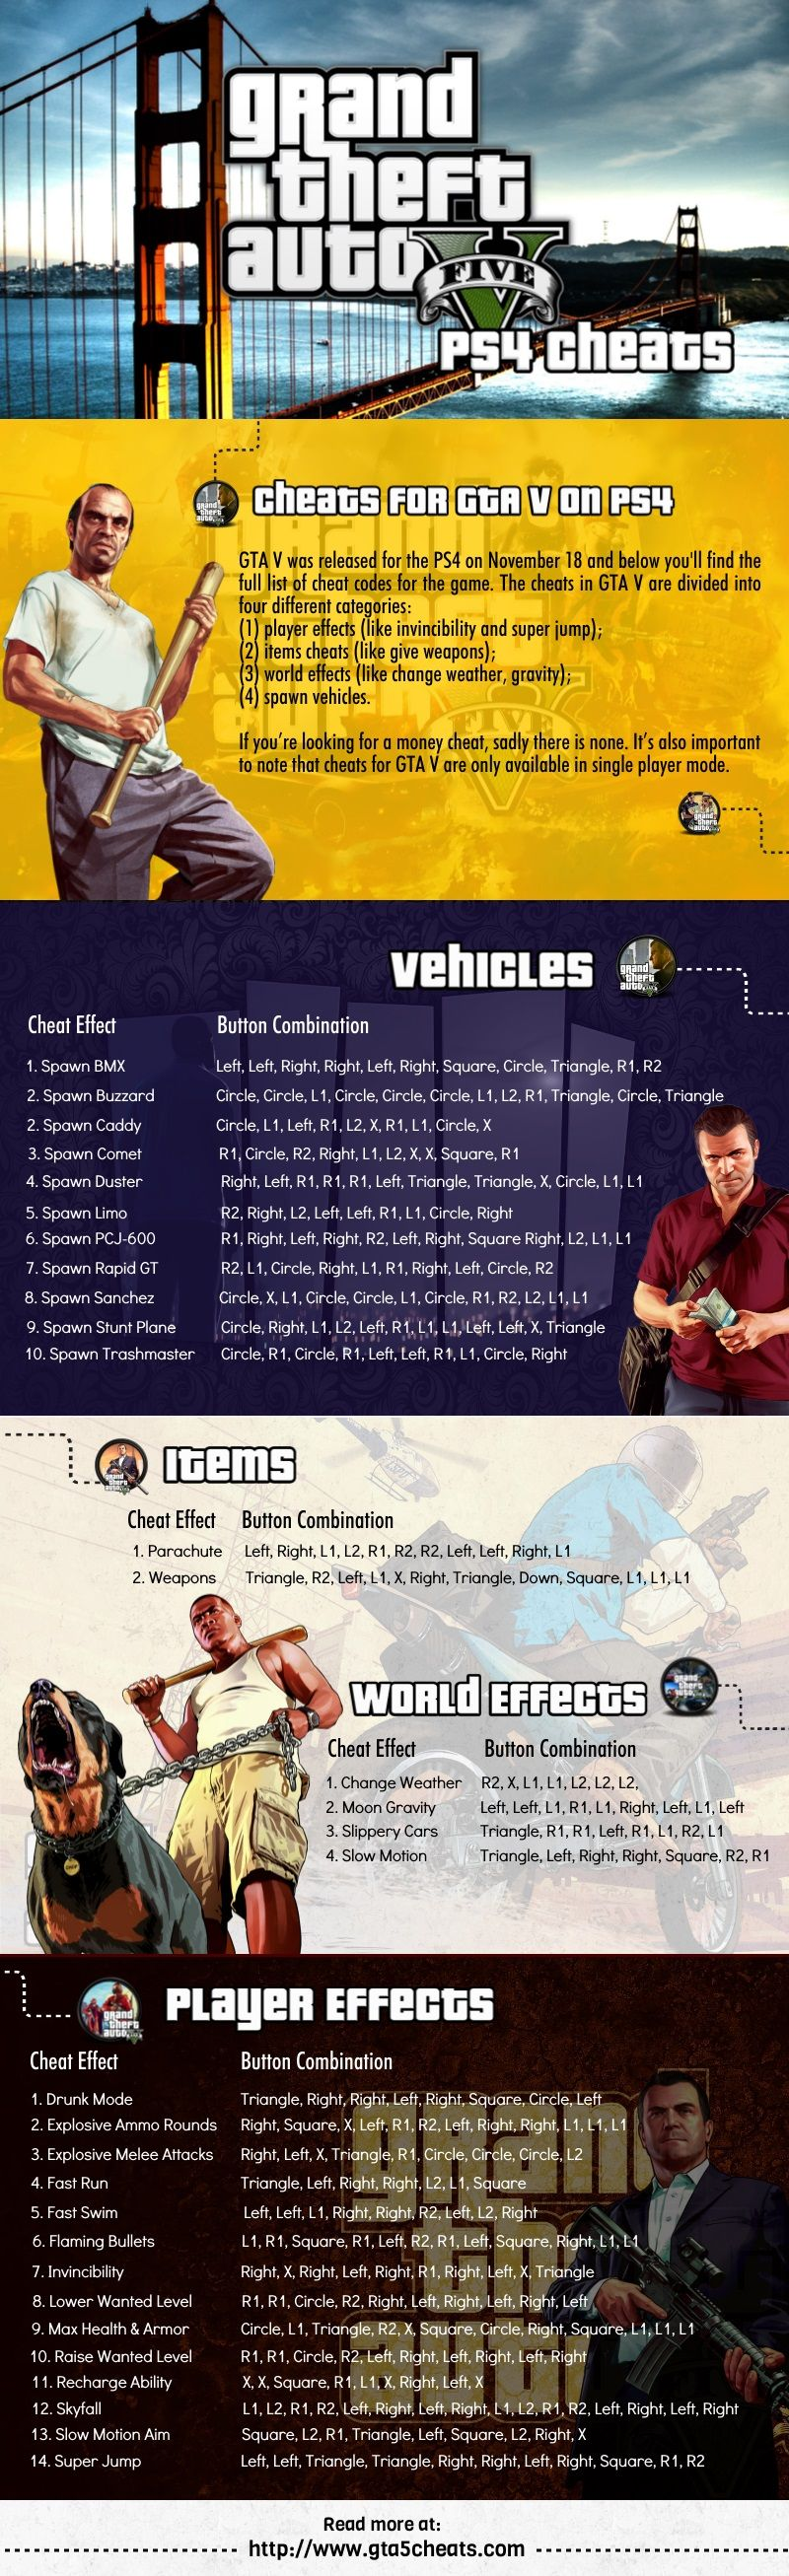 IGCDnet VehiclesCars list for Grand Theft Auto V